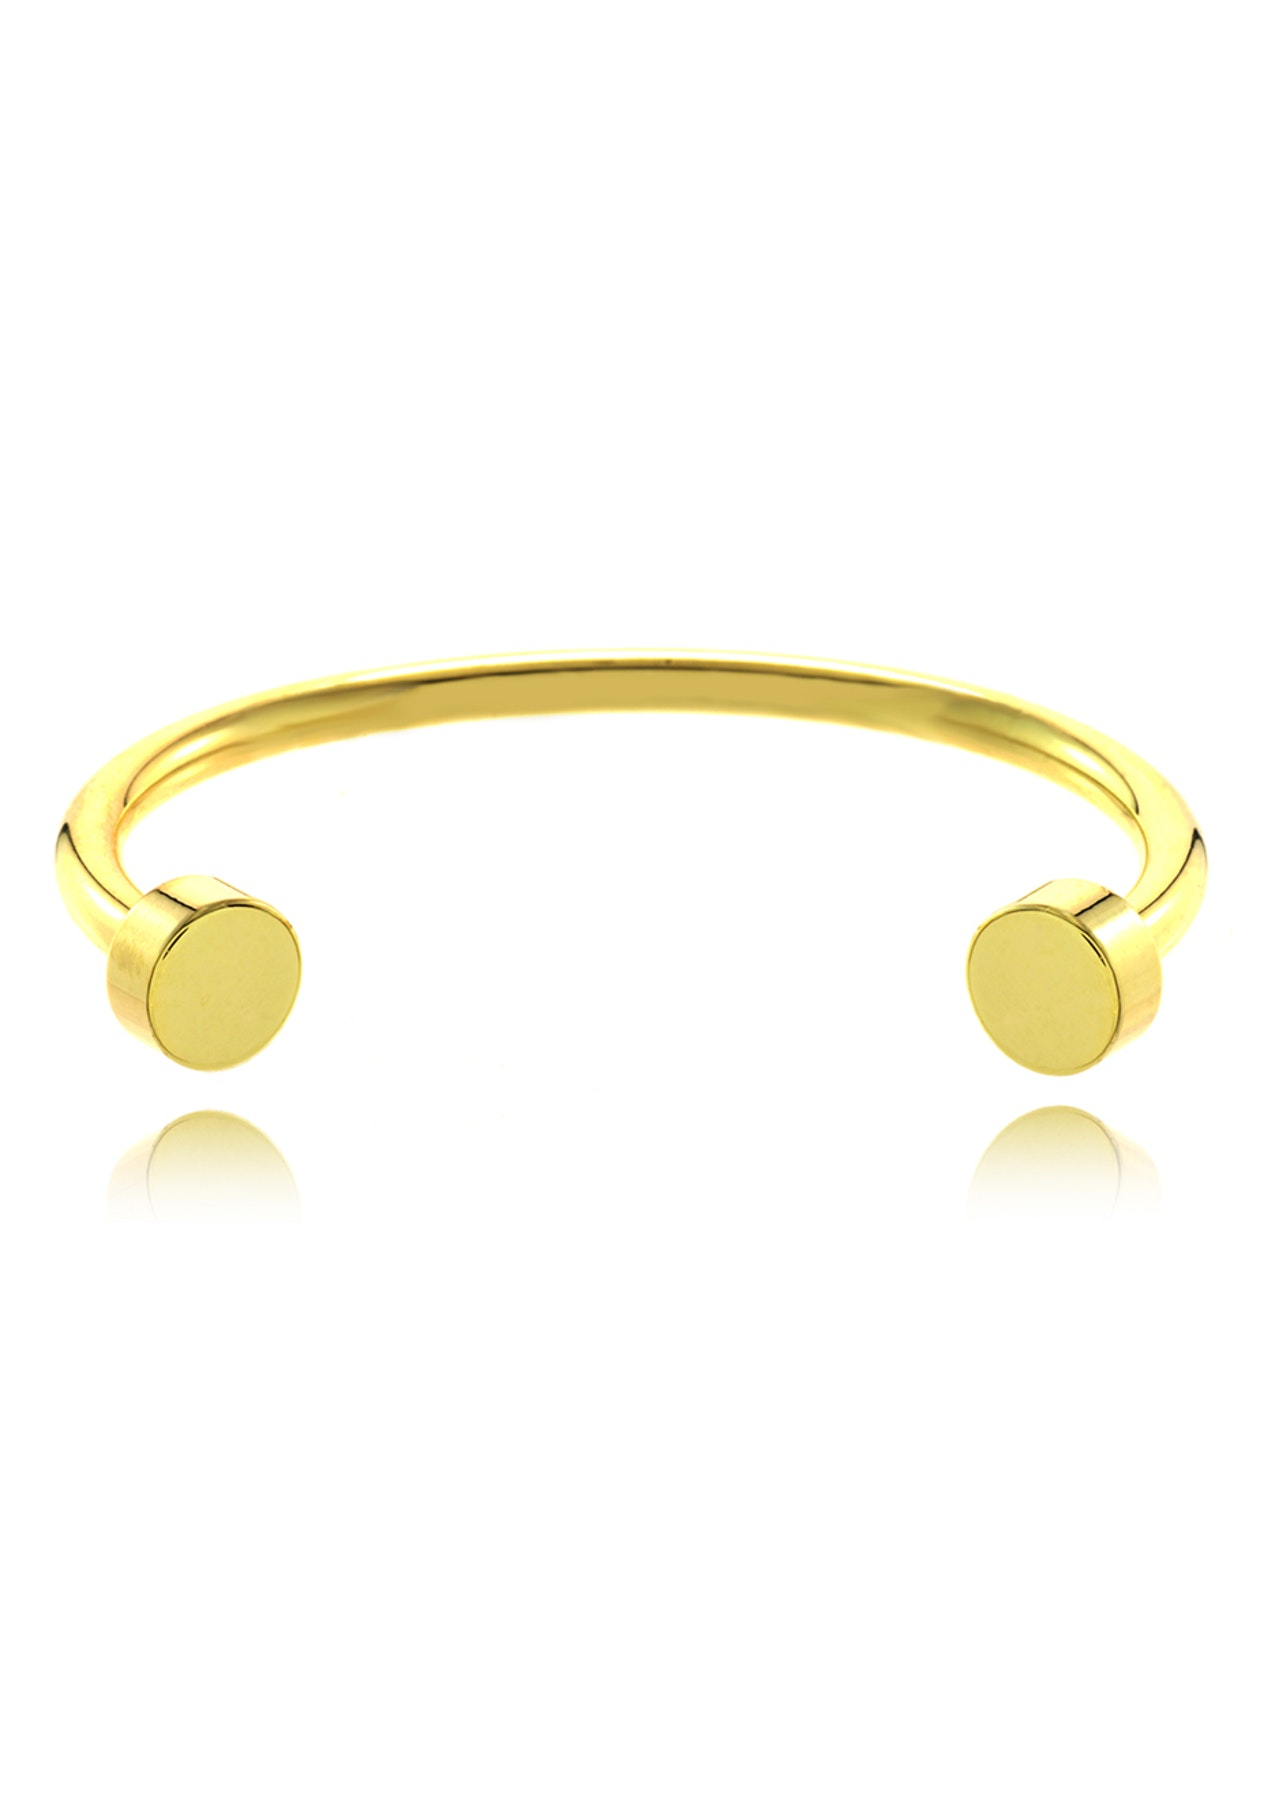 liv oliver nail bracelet by gold brandalley bangle chloe embelished head